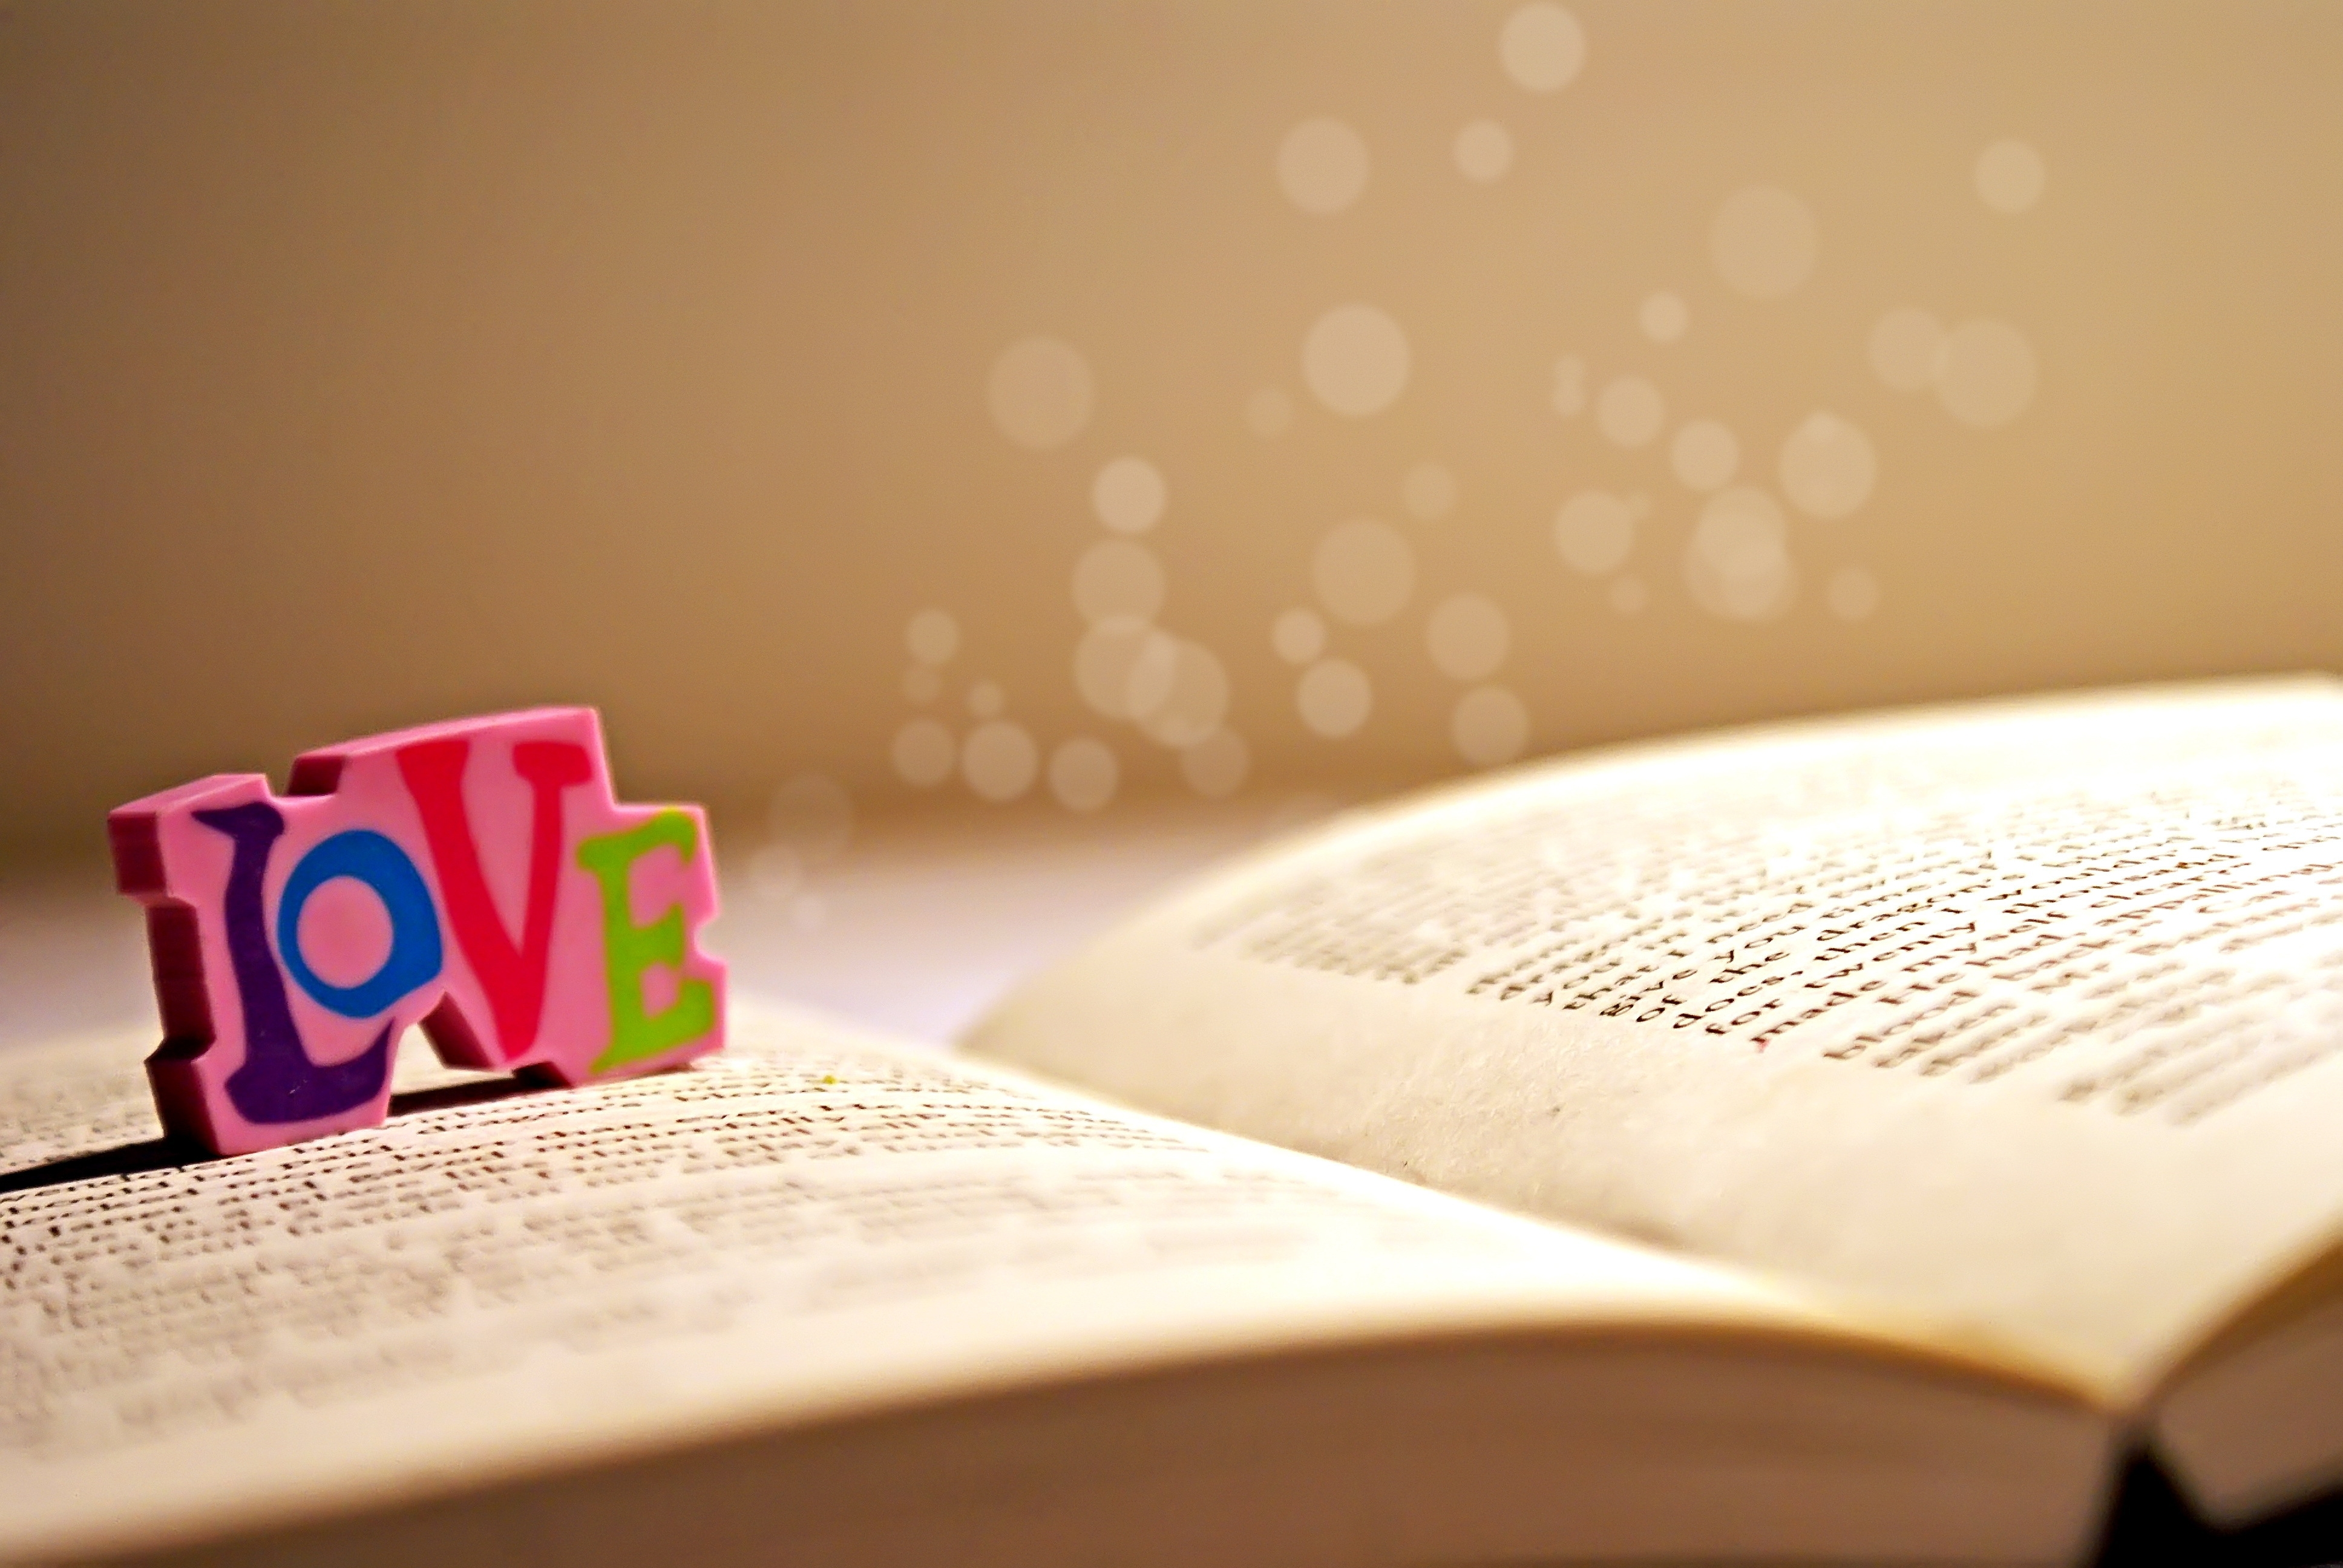 book_dice_label_love_word_54712_3872x2592